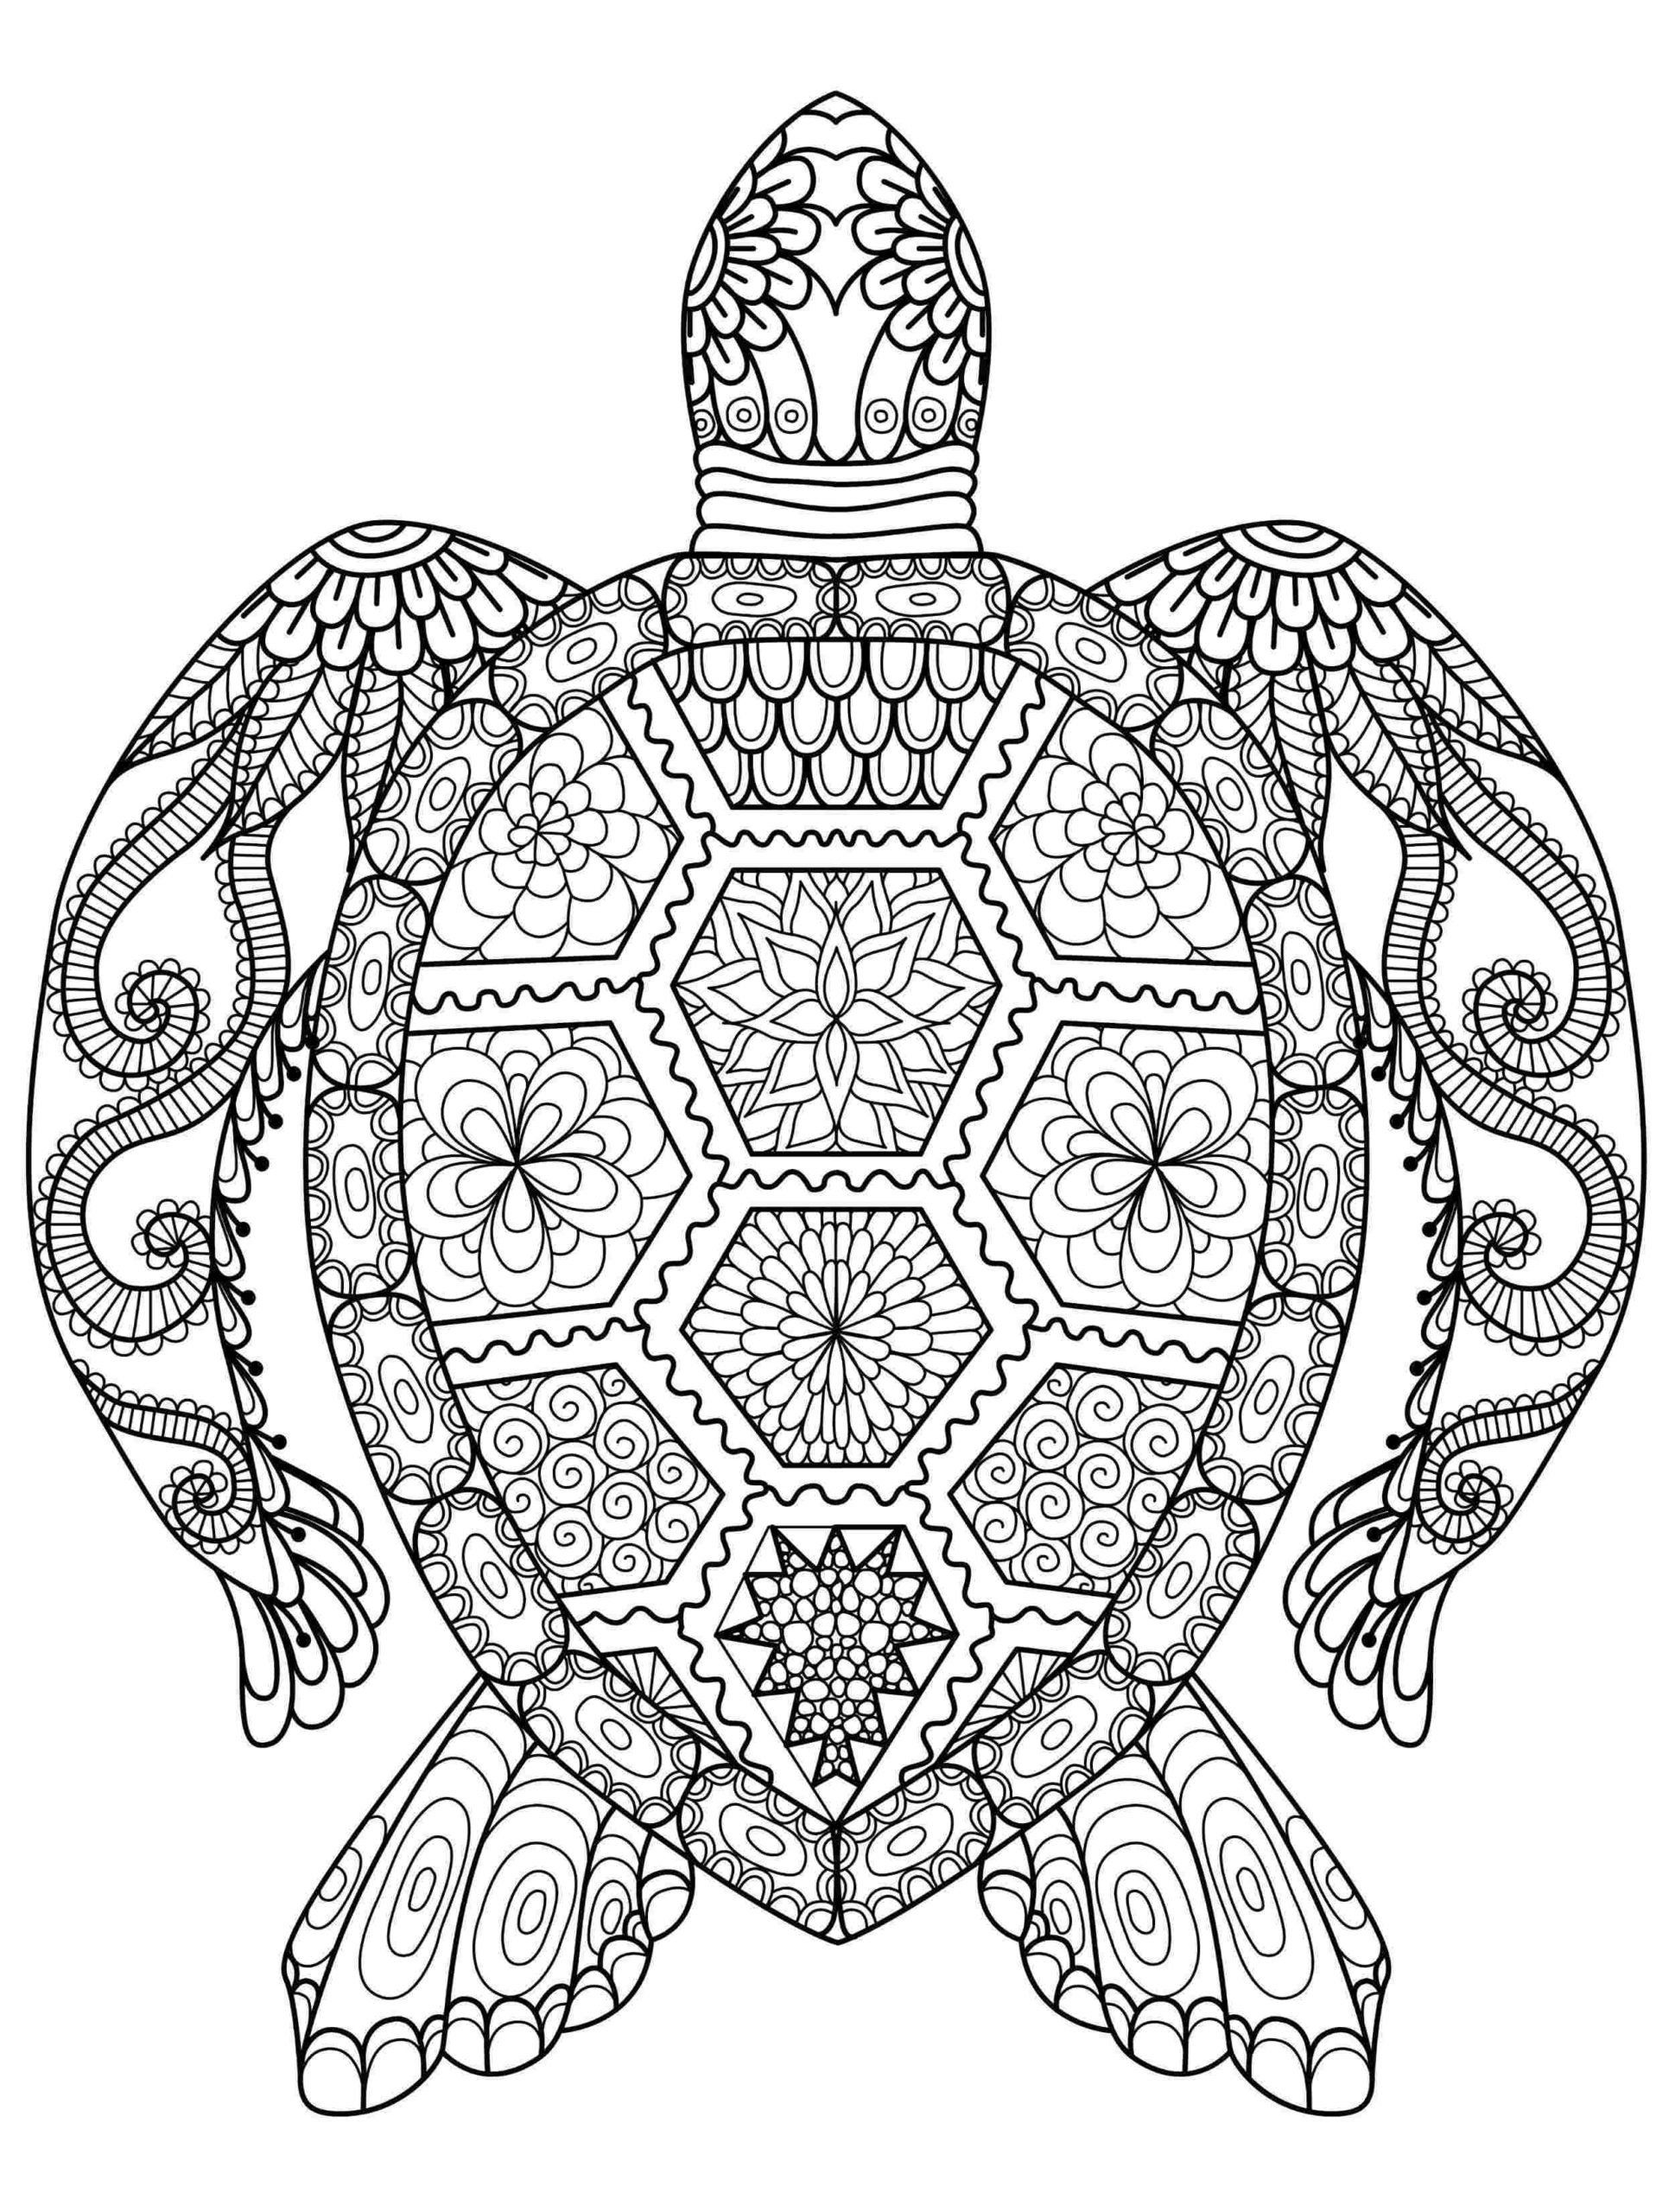 Free Online Mandala Coloring Pages Coloring Pages Mandala Coloring Names Free Printable Turtle Coloring Pages Cool Coloring Pages Free Coloring Pages